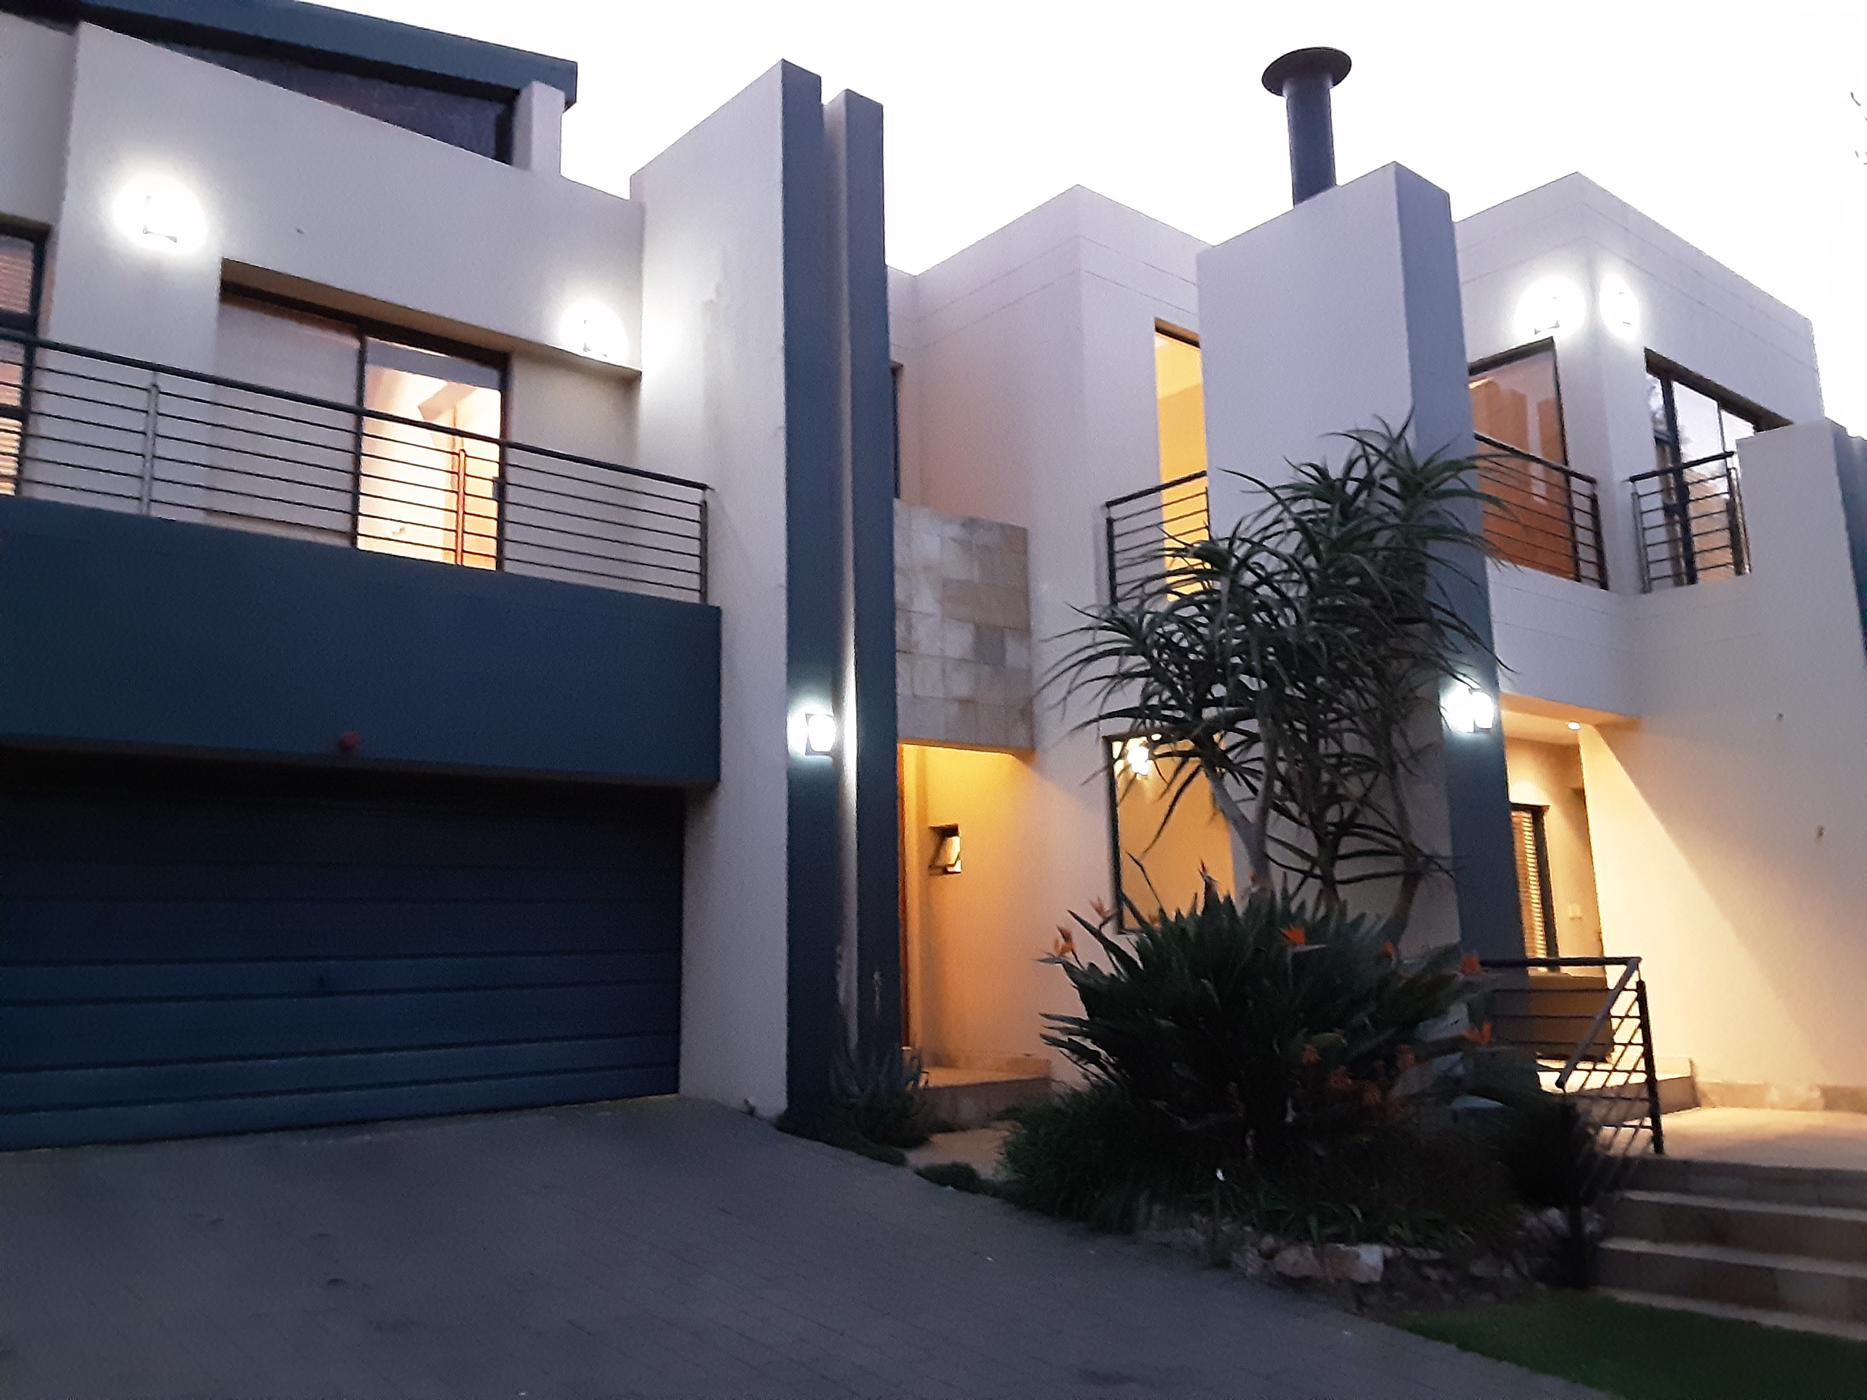 https://listing.pamgolding.co.za/images/properties/201908/1004033/H/1004033_H_29.jpg